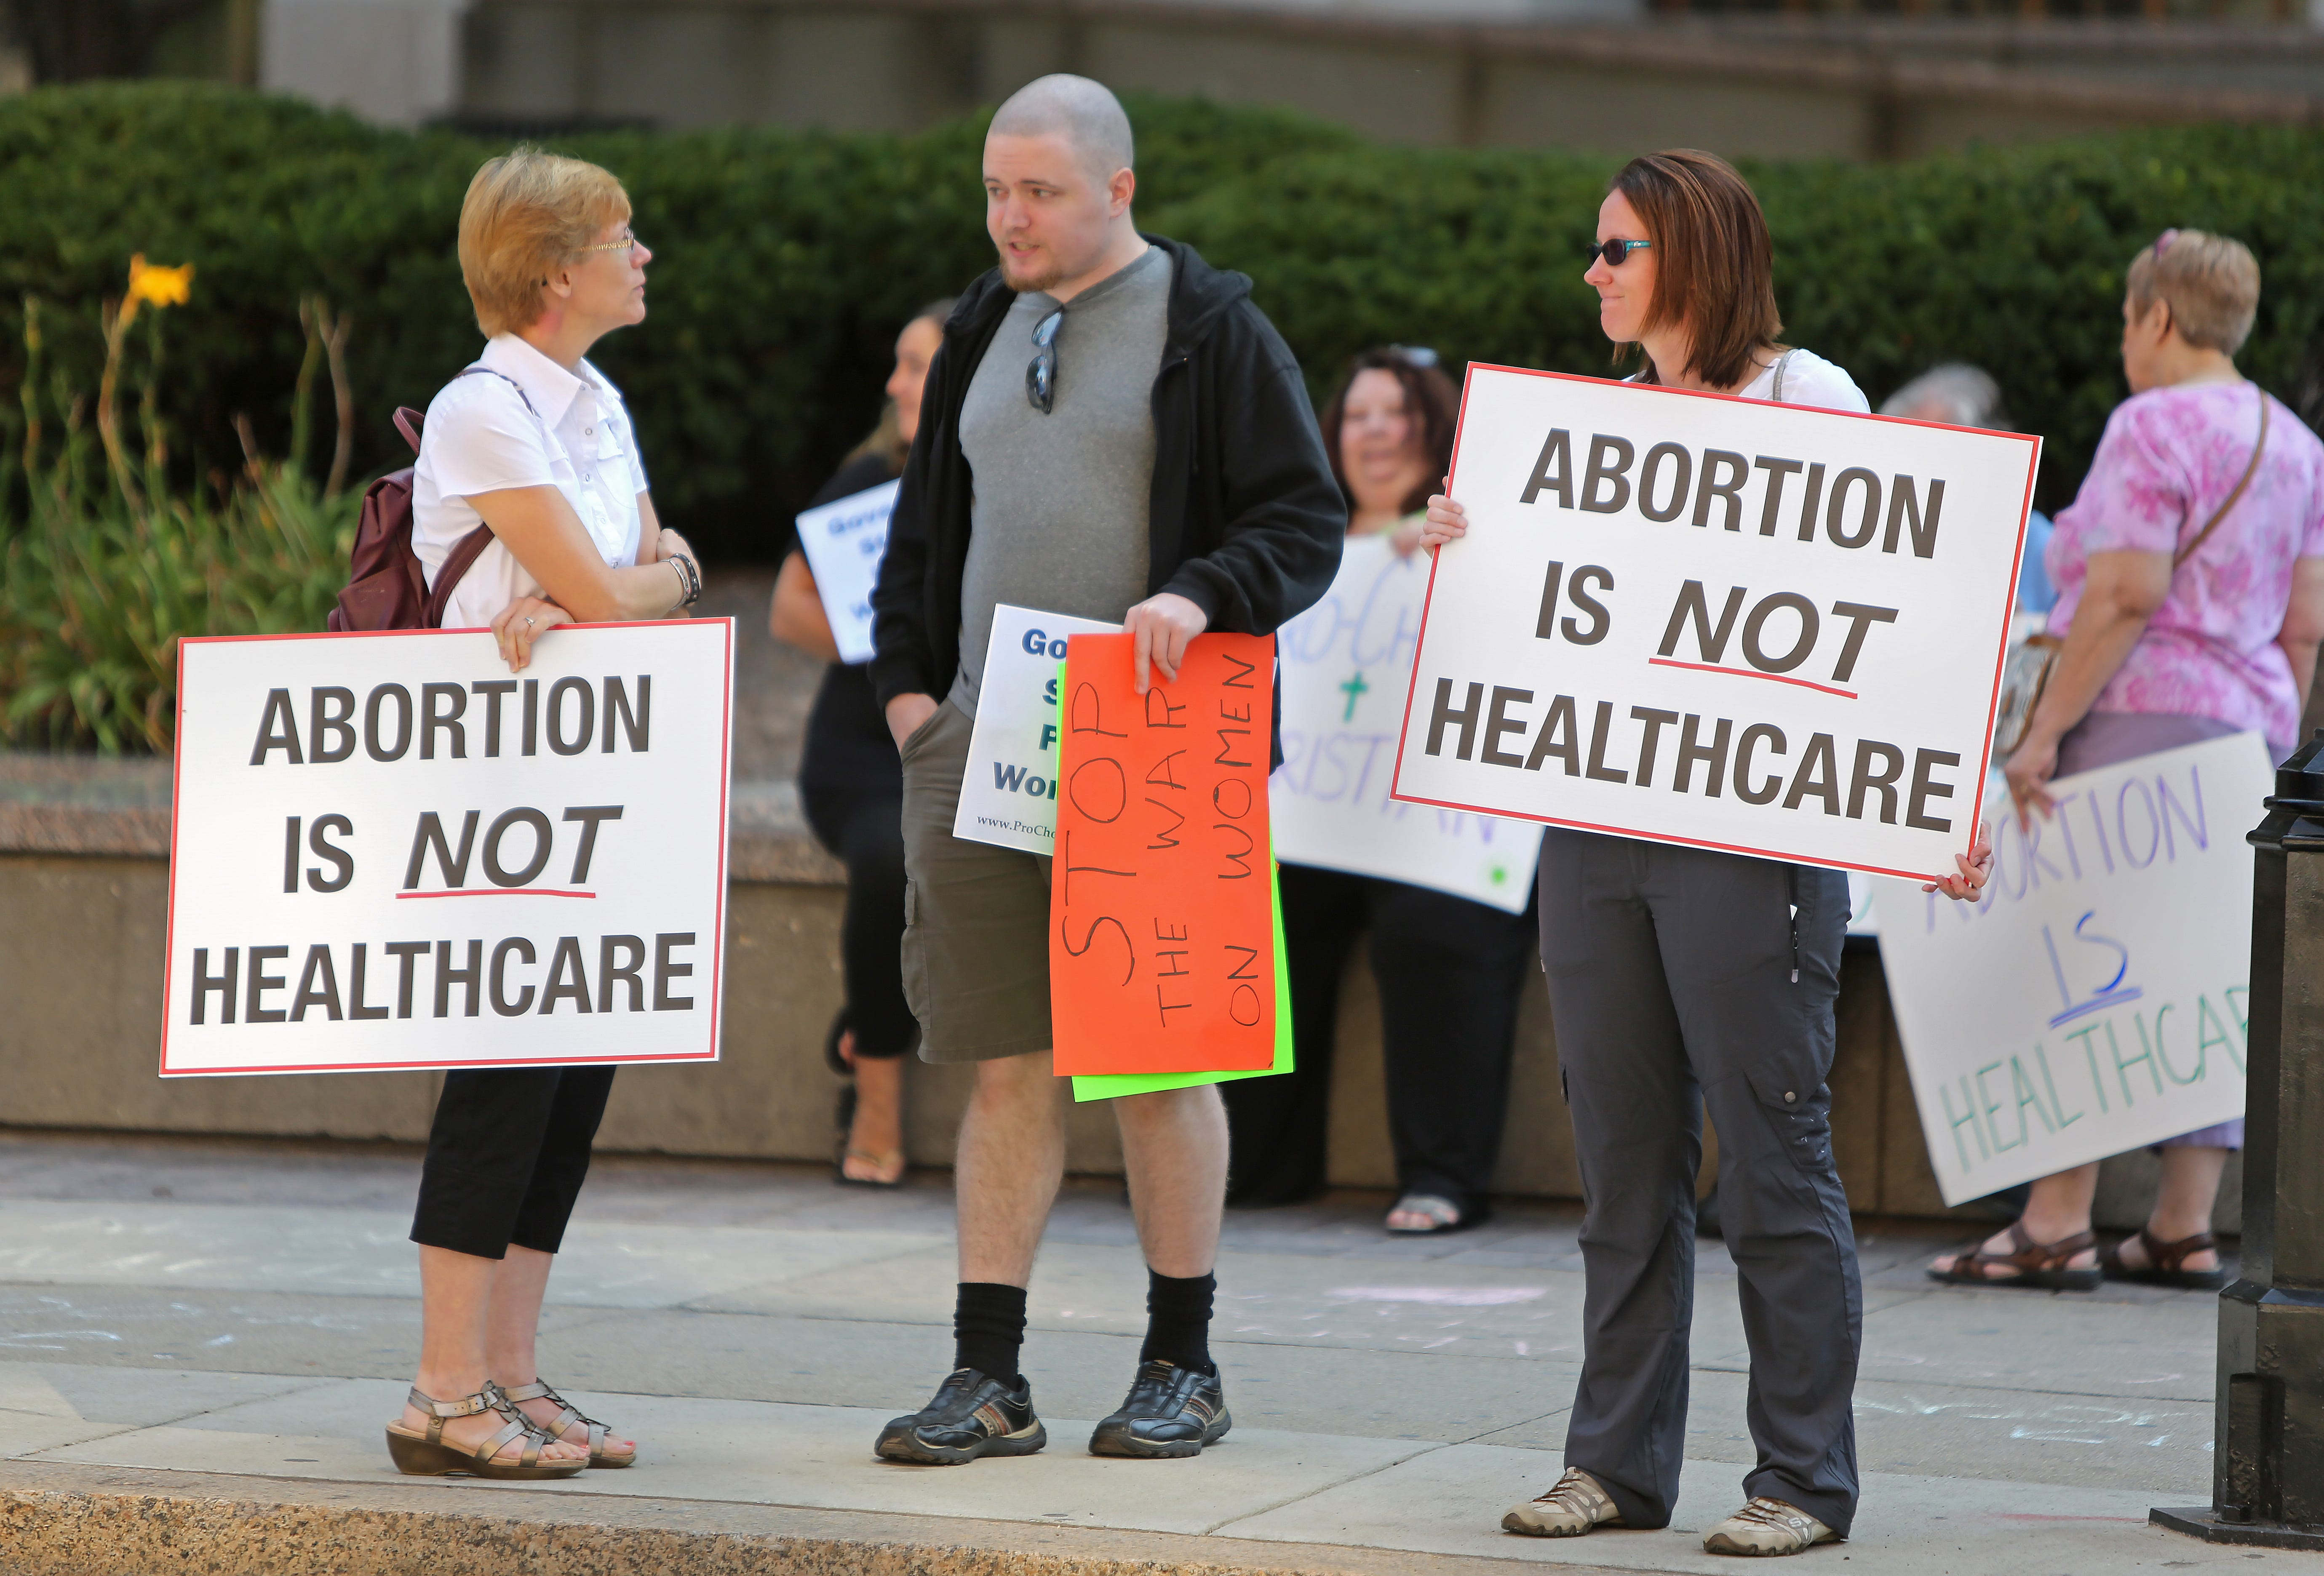 pics Ohio's new fetal heartbeat' bill is really terrifying for women's right to choose